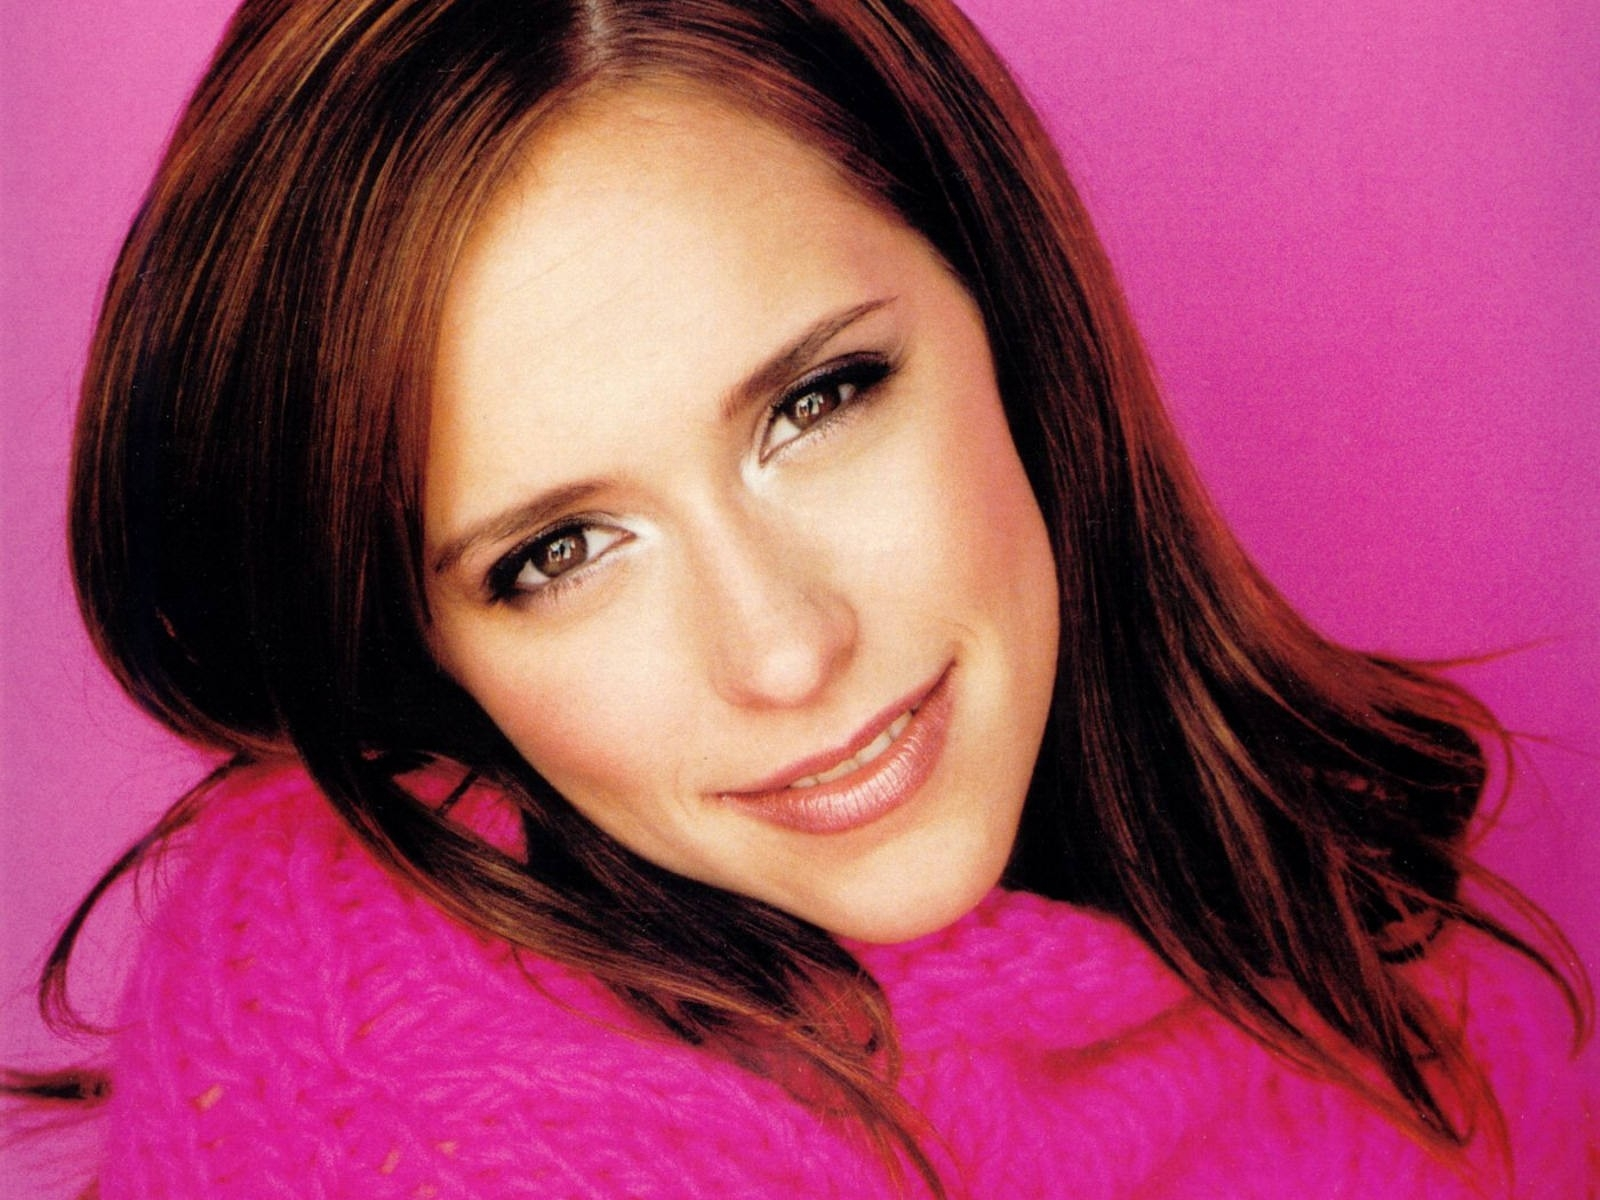 Wallpaper di Jennifer Love Hewitt, bella in rosa